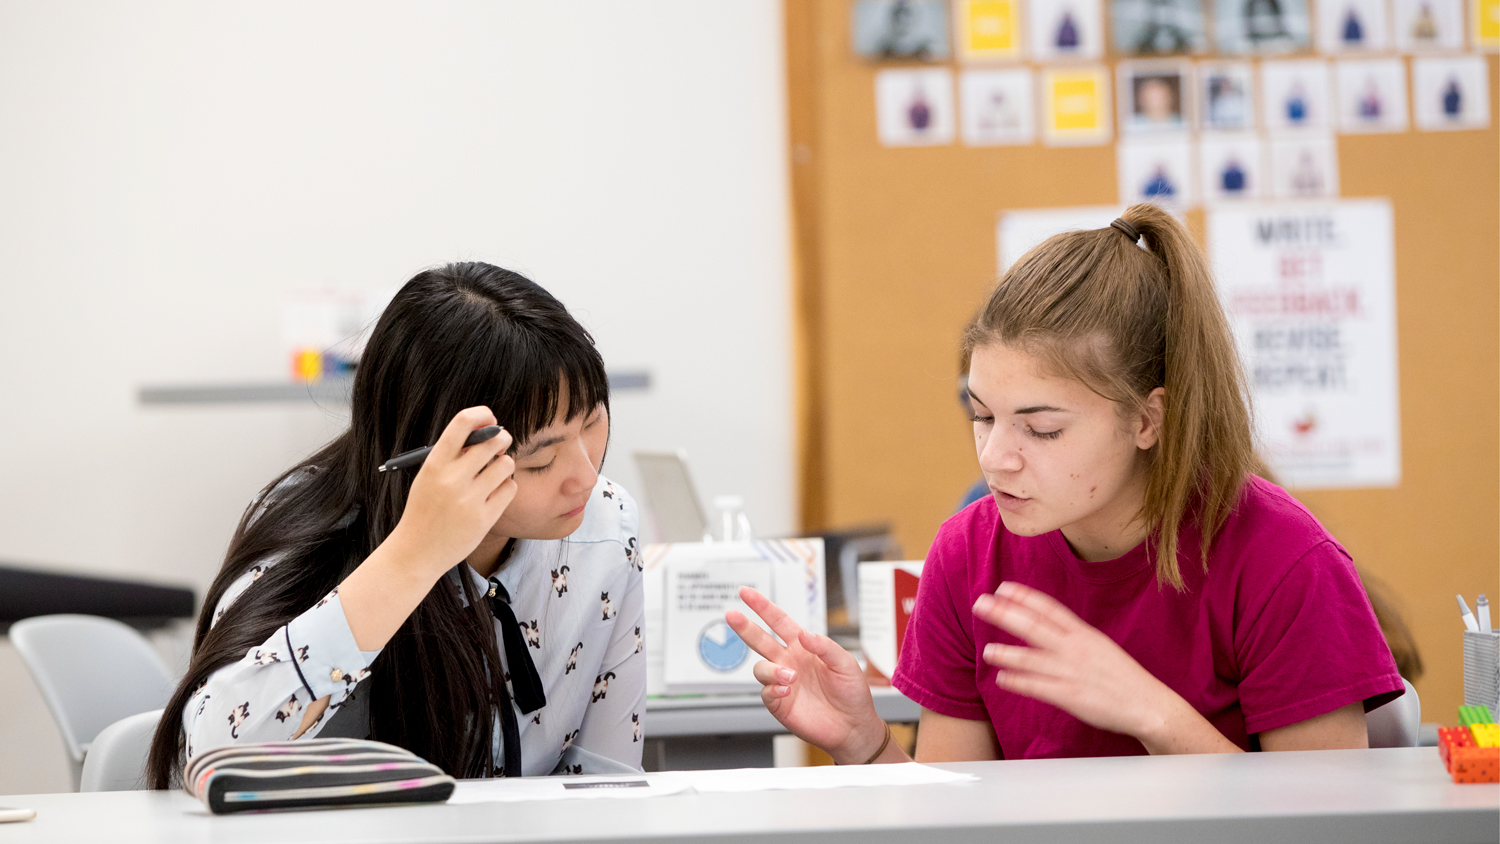 two female students talking while looking at a book